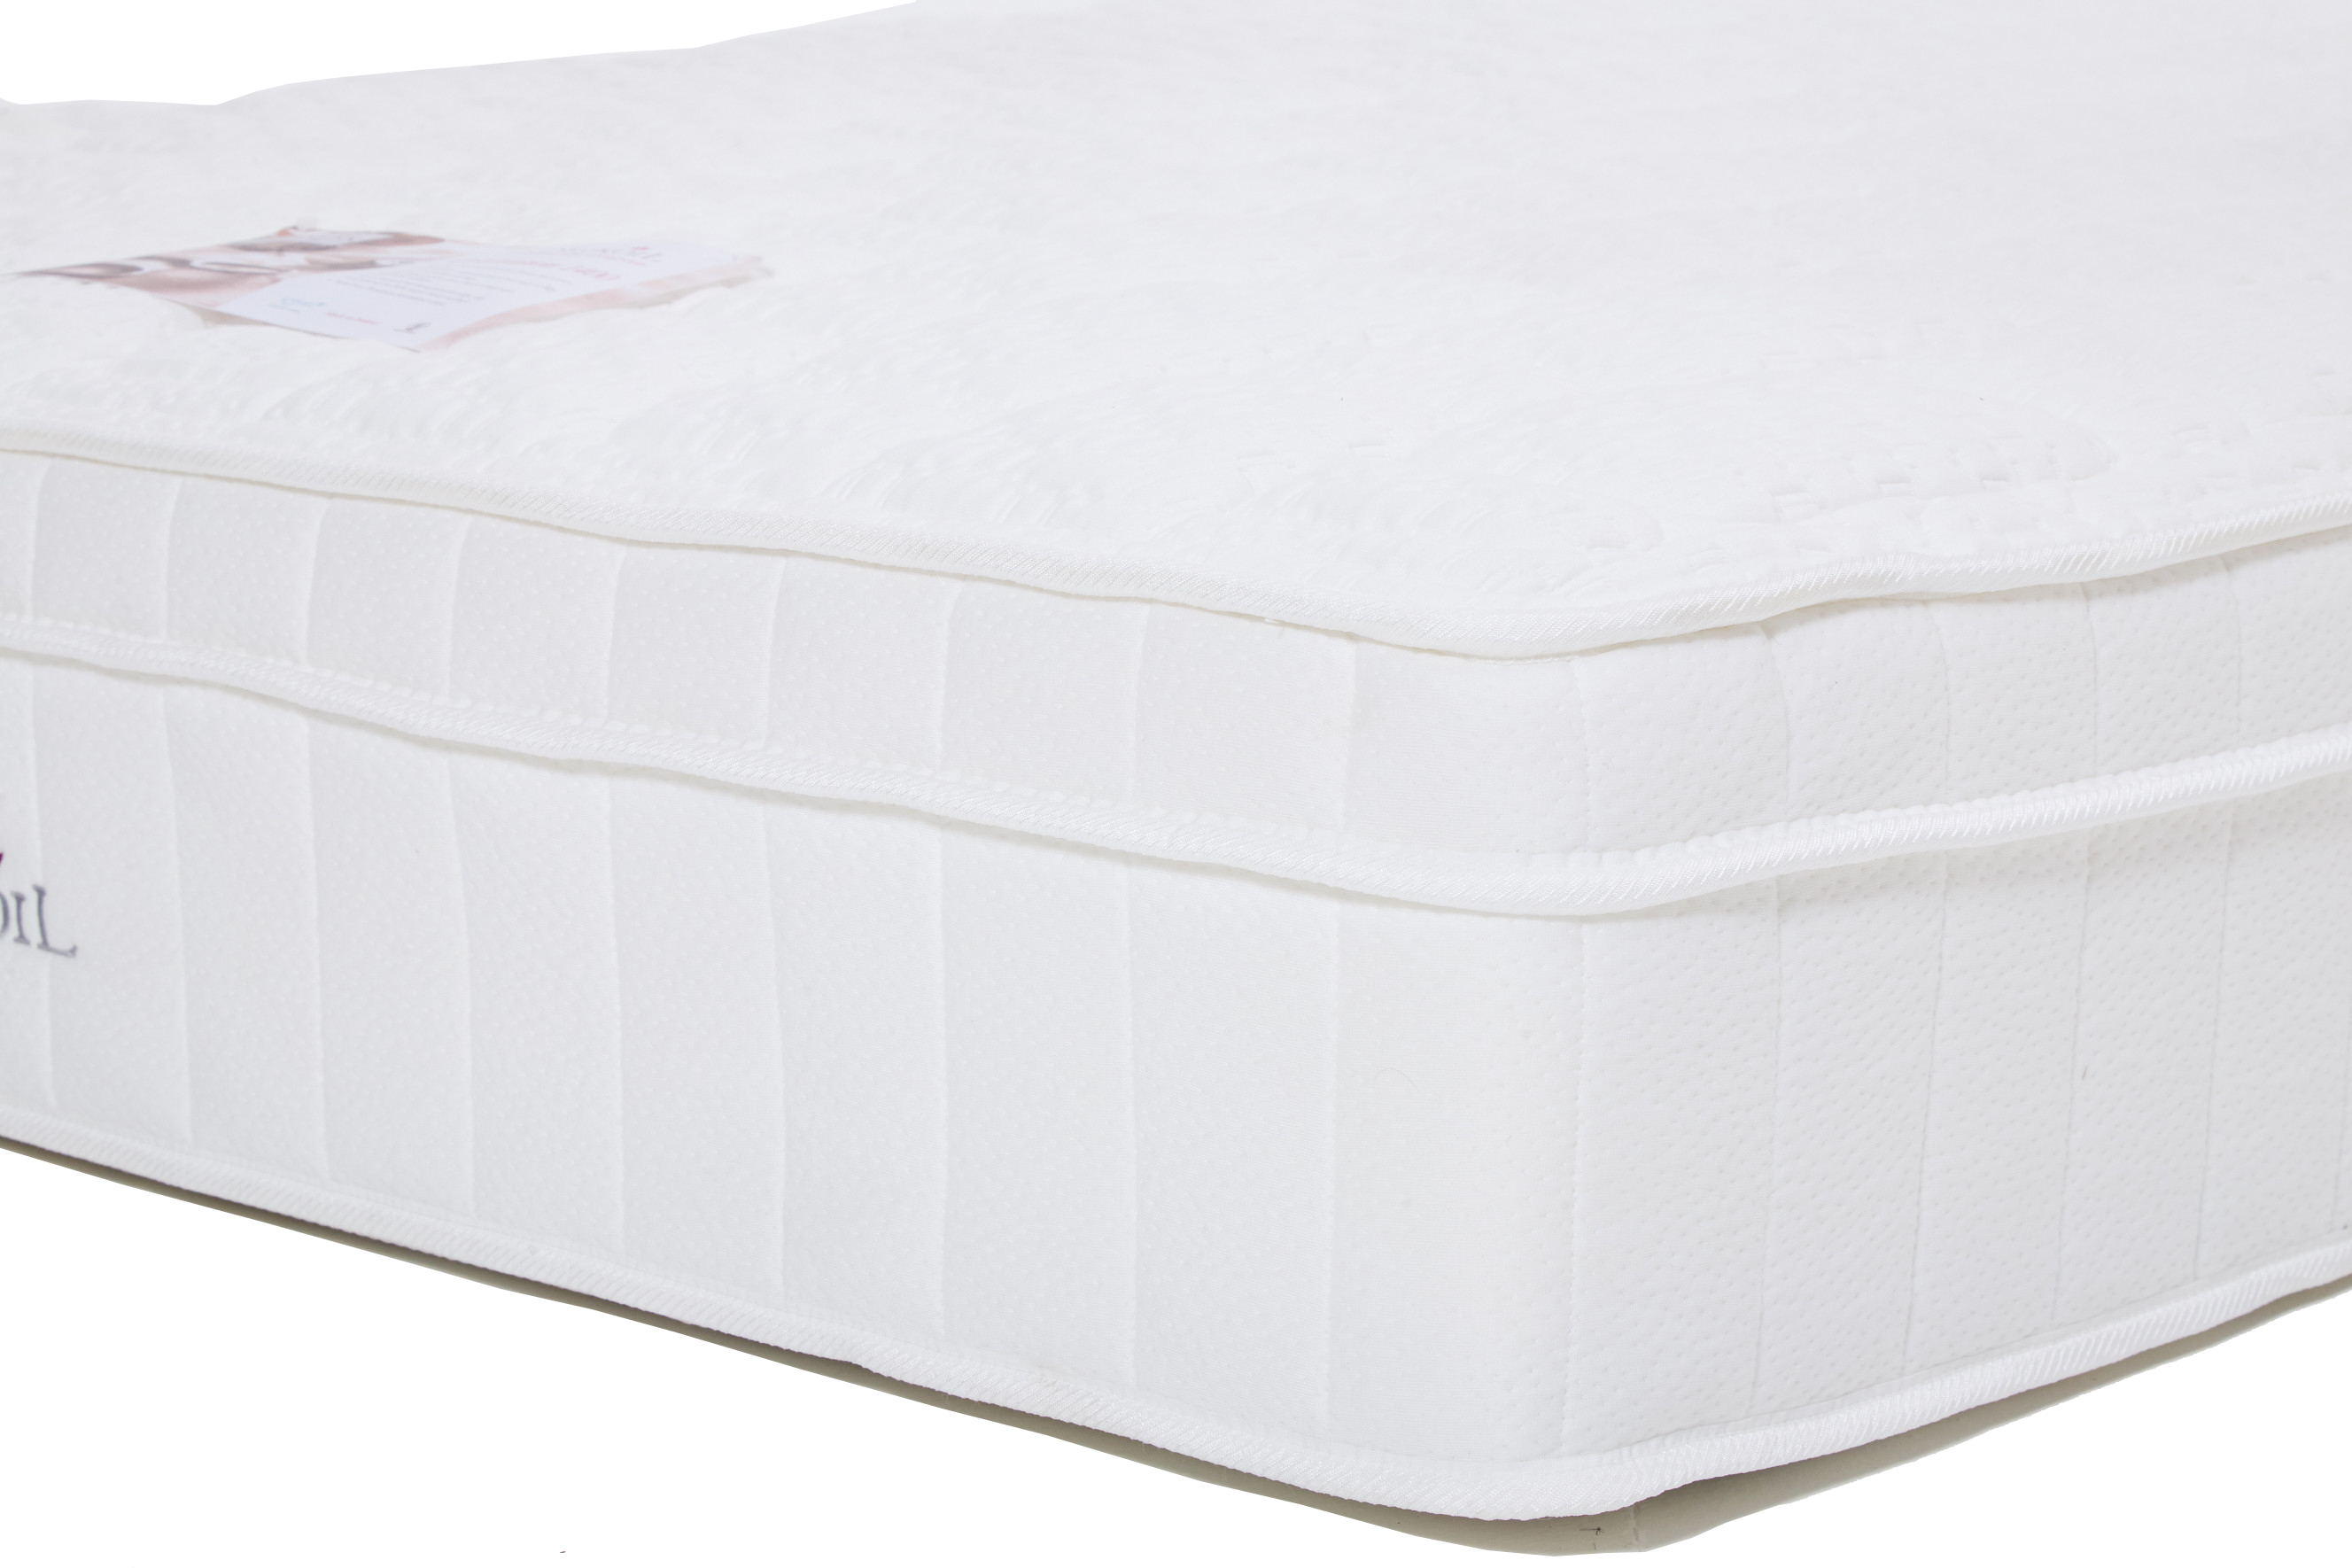 King Koil Celebration 1400 Mattress